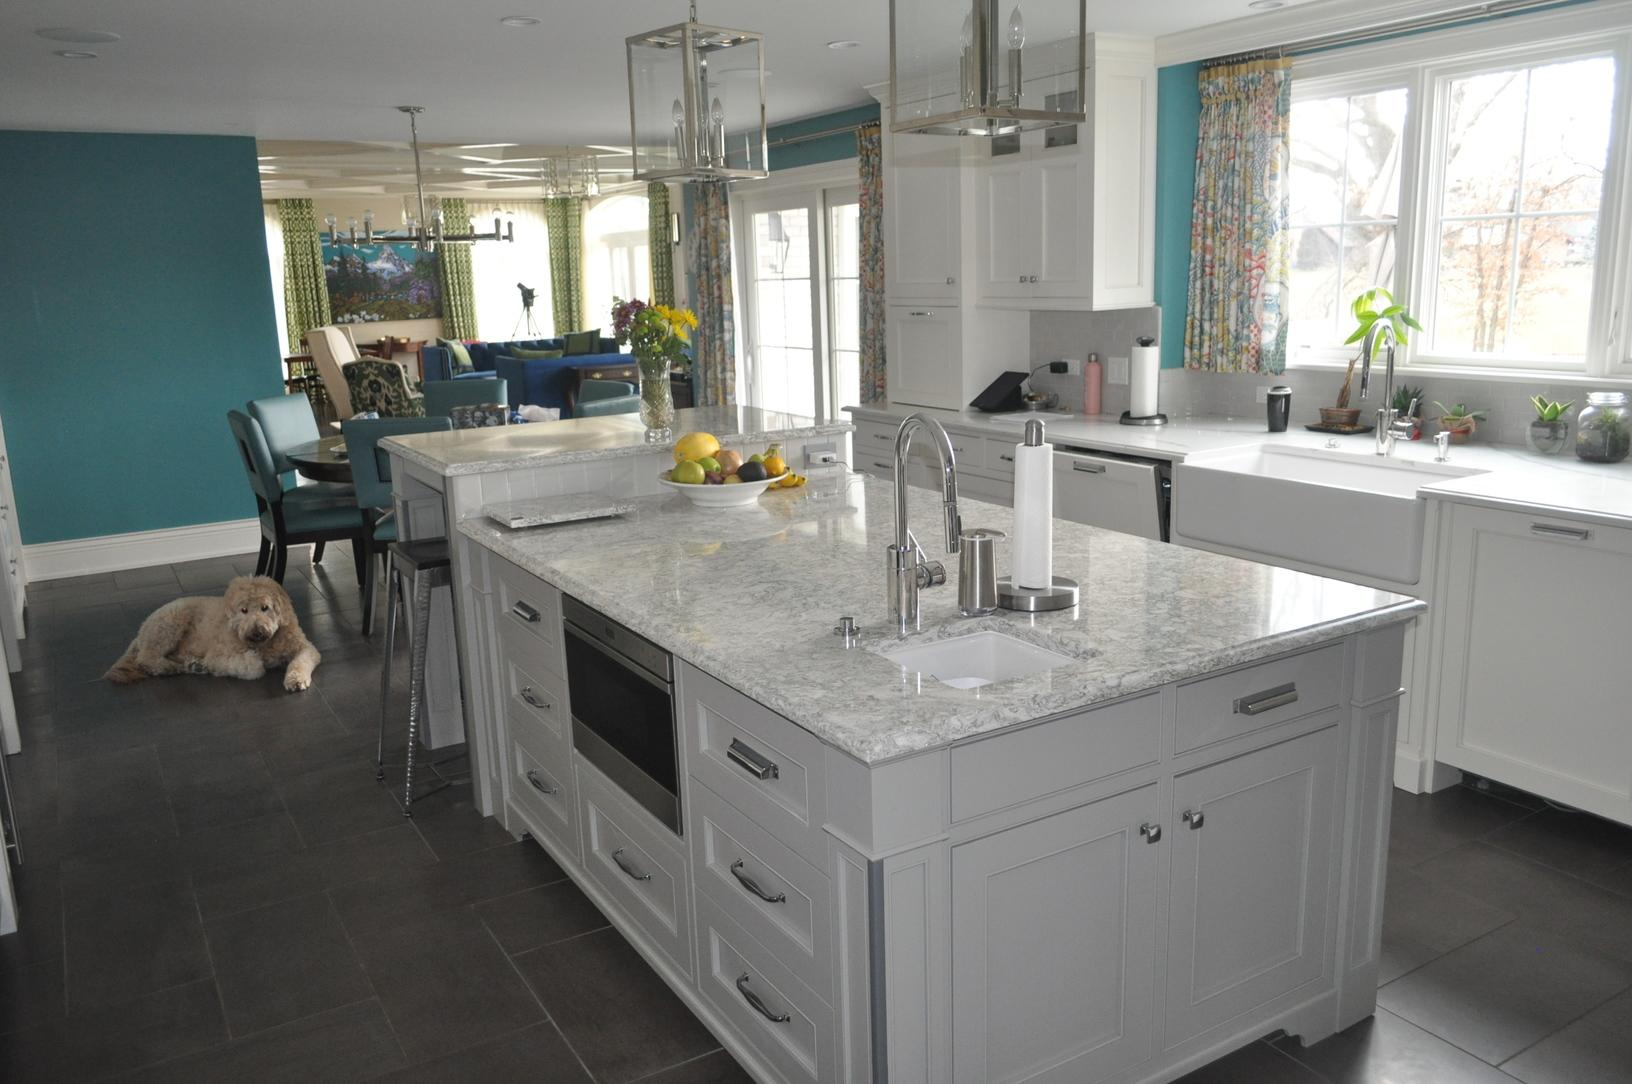 Kitchen Remodel in Clarendon Hills, Illinois - After Photo